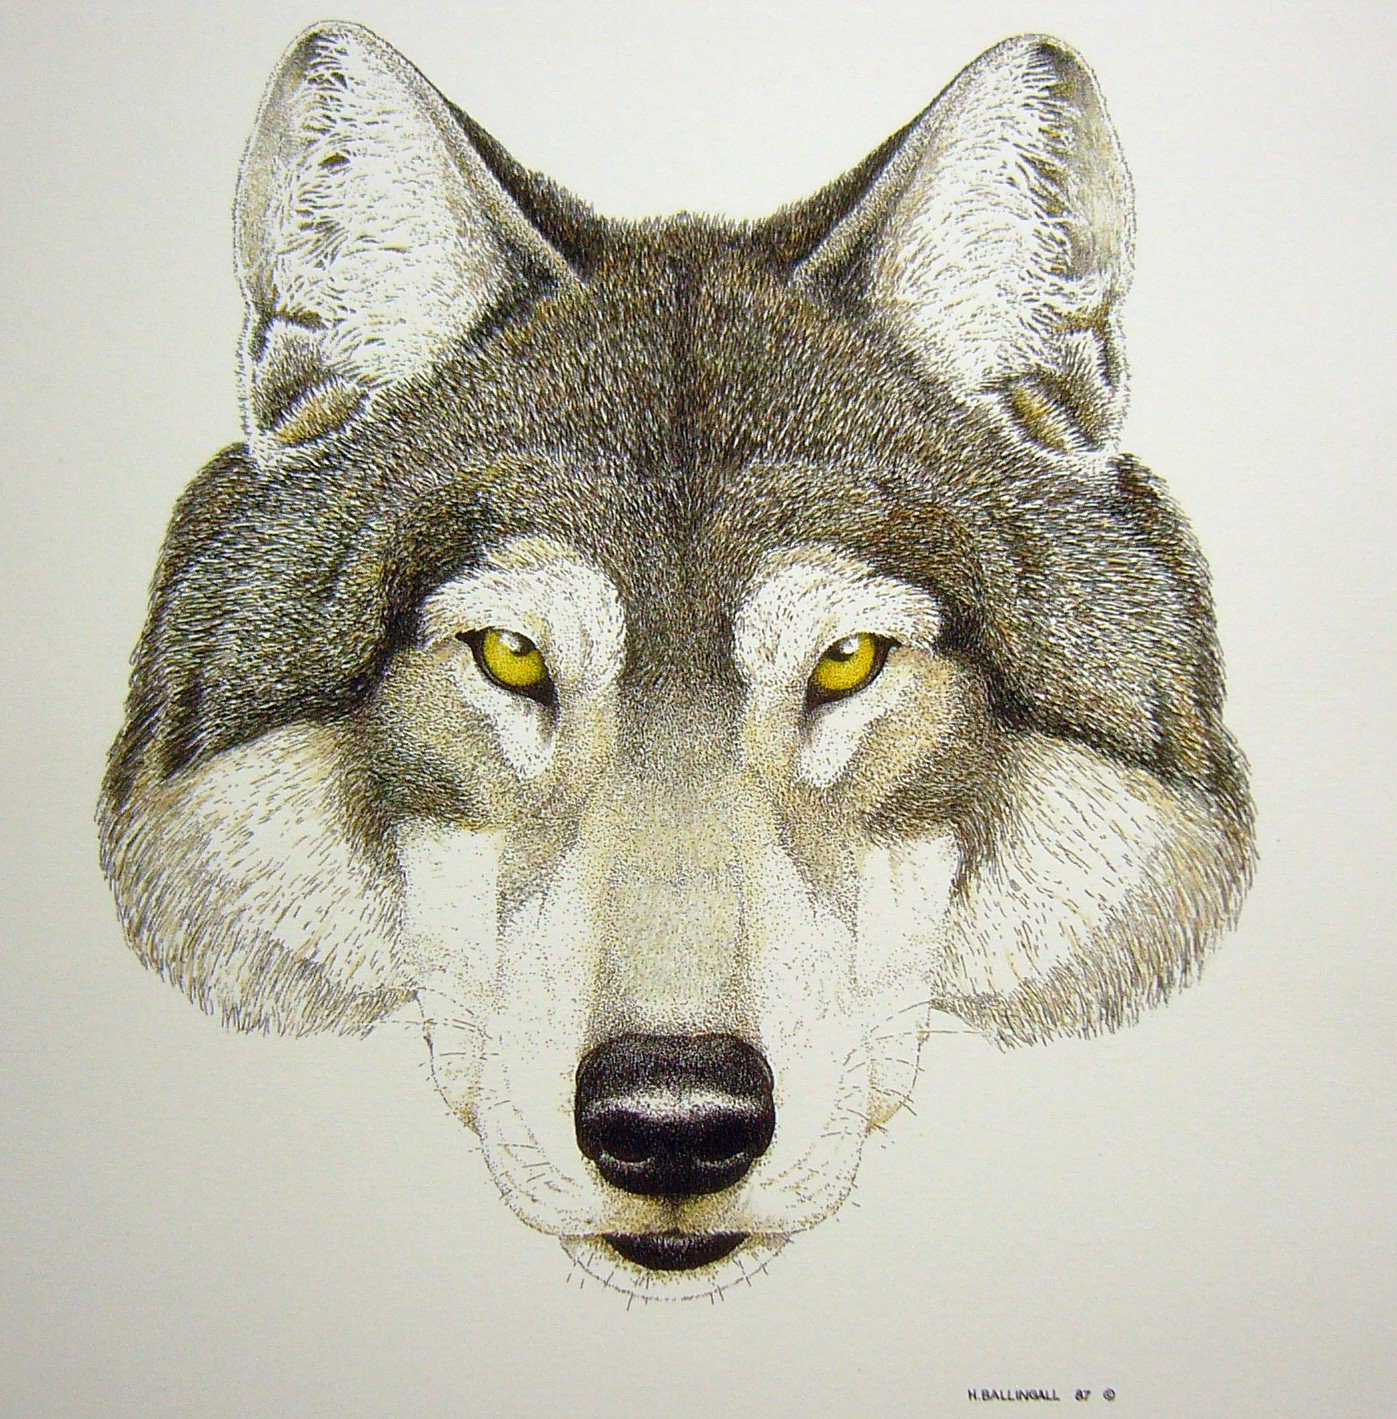 Timber Wolf  by H Ballingall  #art #wolves #wildlife pen and ink  using @STAEMars #prints #contact @TheRedFisher1 https://t.co/Kdkm1E6YrG